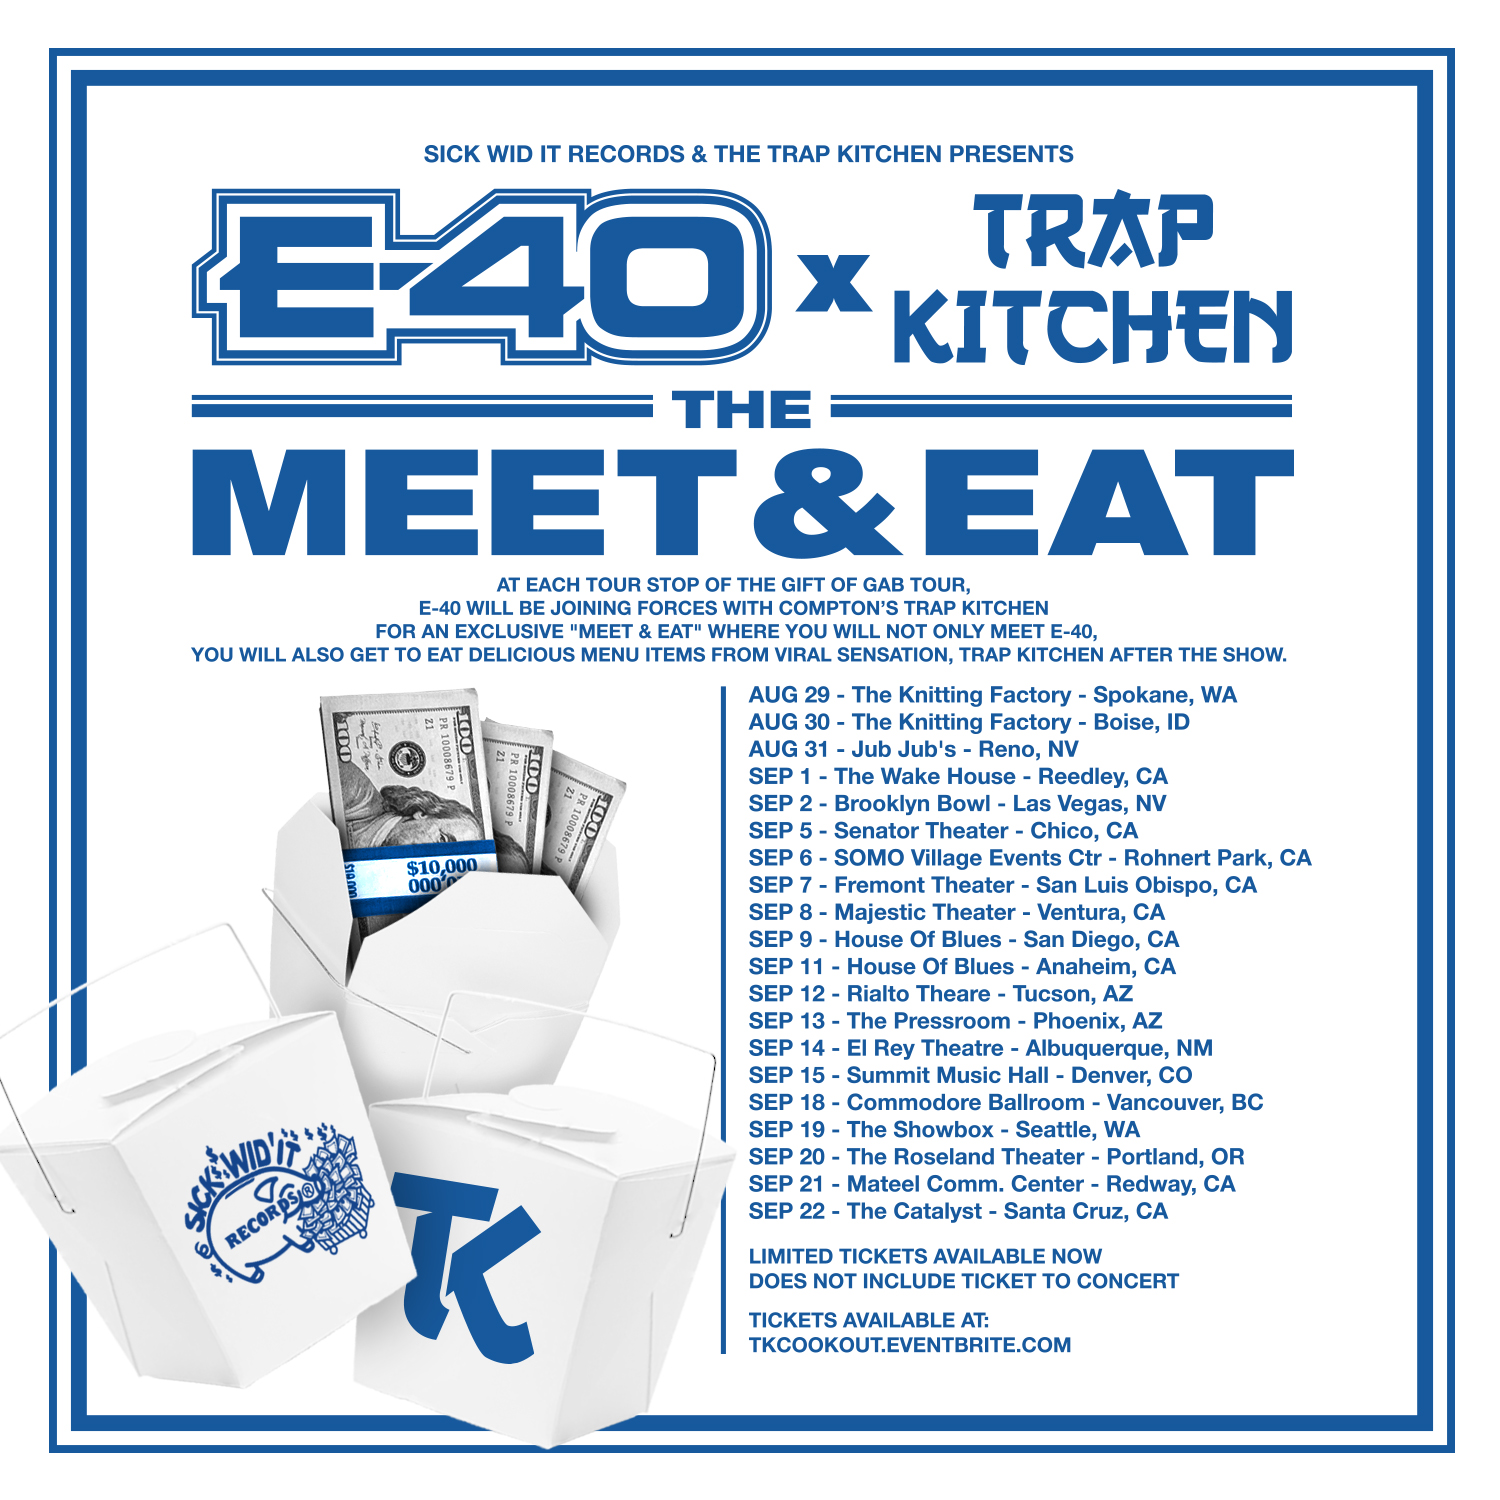 Trap kitchen cookout tour x e 40 trap kitchen meet eat the hip hops hottest chefs trap kitchen hook up with the legend e 40 for a unique meet eat tour experience as part of the upcoming gift of gab tour m4hsunfo